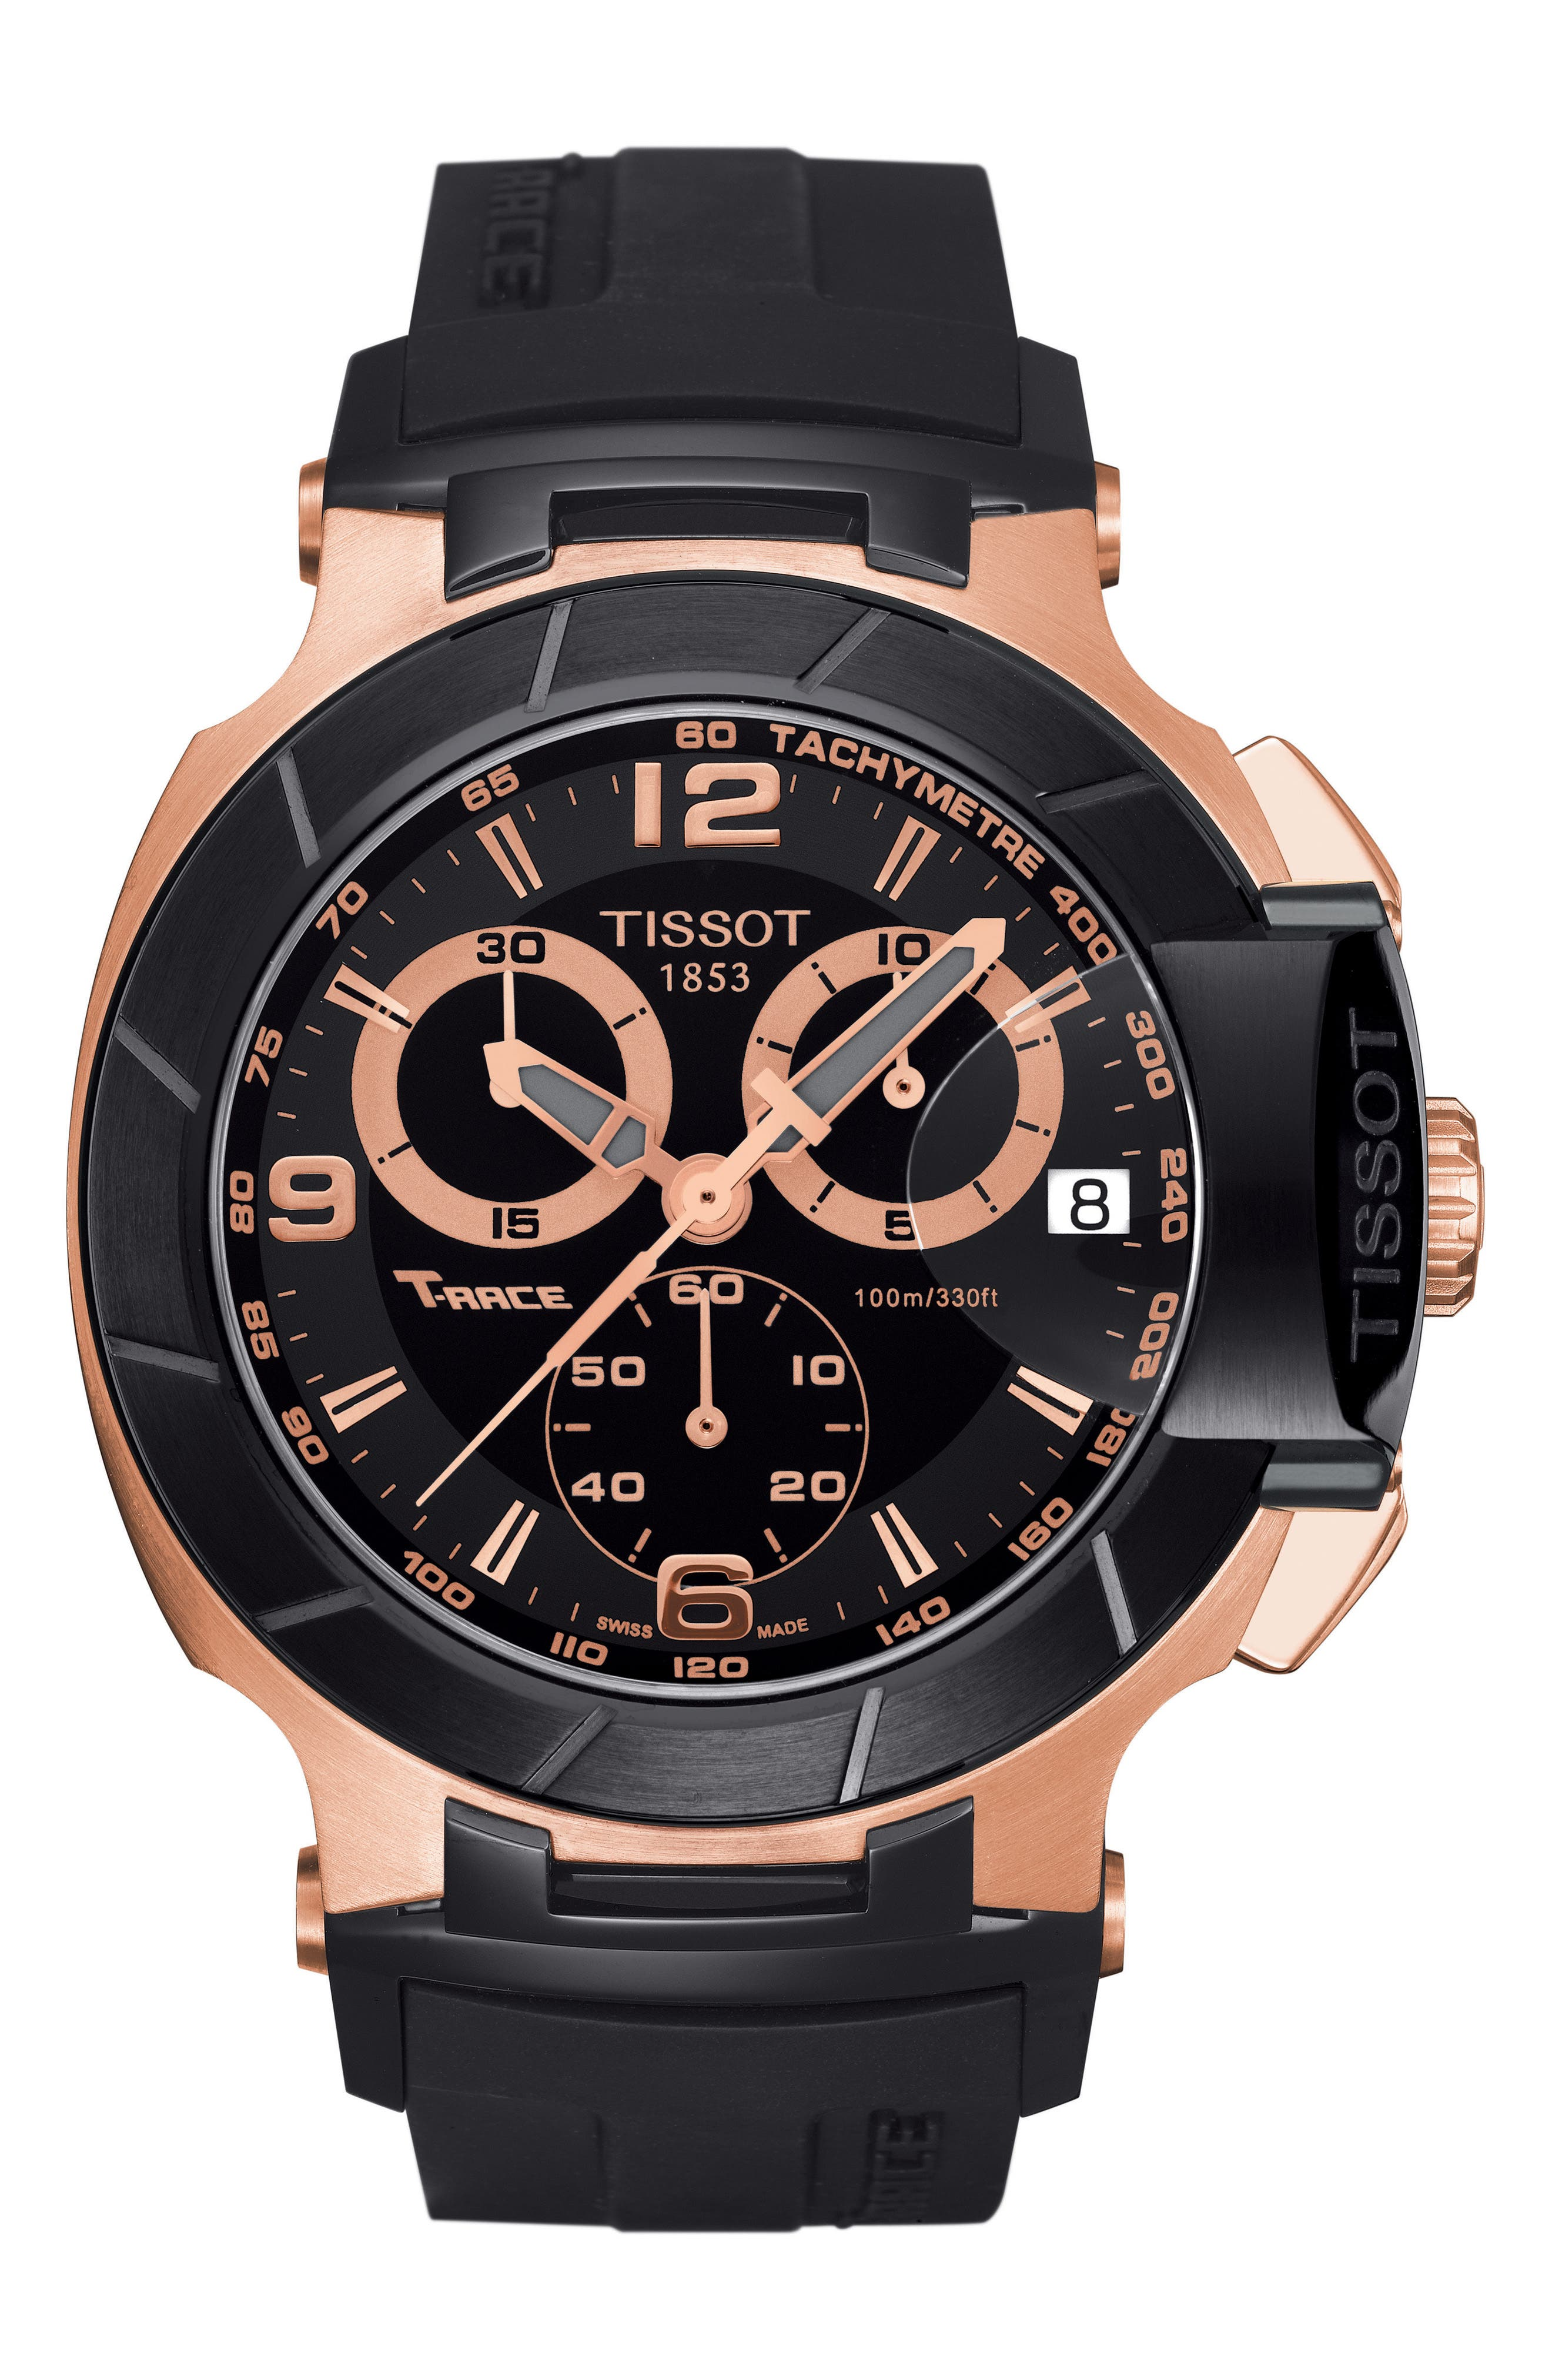 TISSOT T-Race Chronograph Silicone Strap Watch, 50mm, Main, color, BLACK/ ROSE GOLD